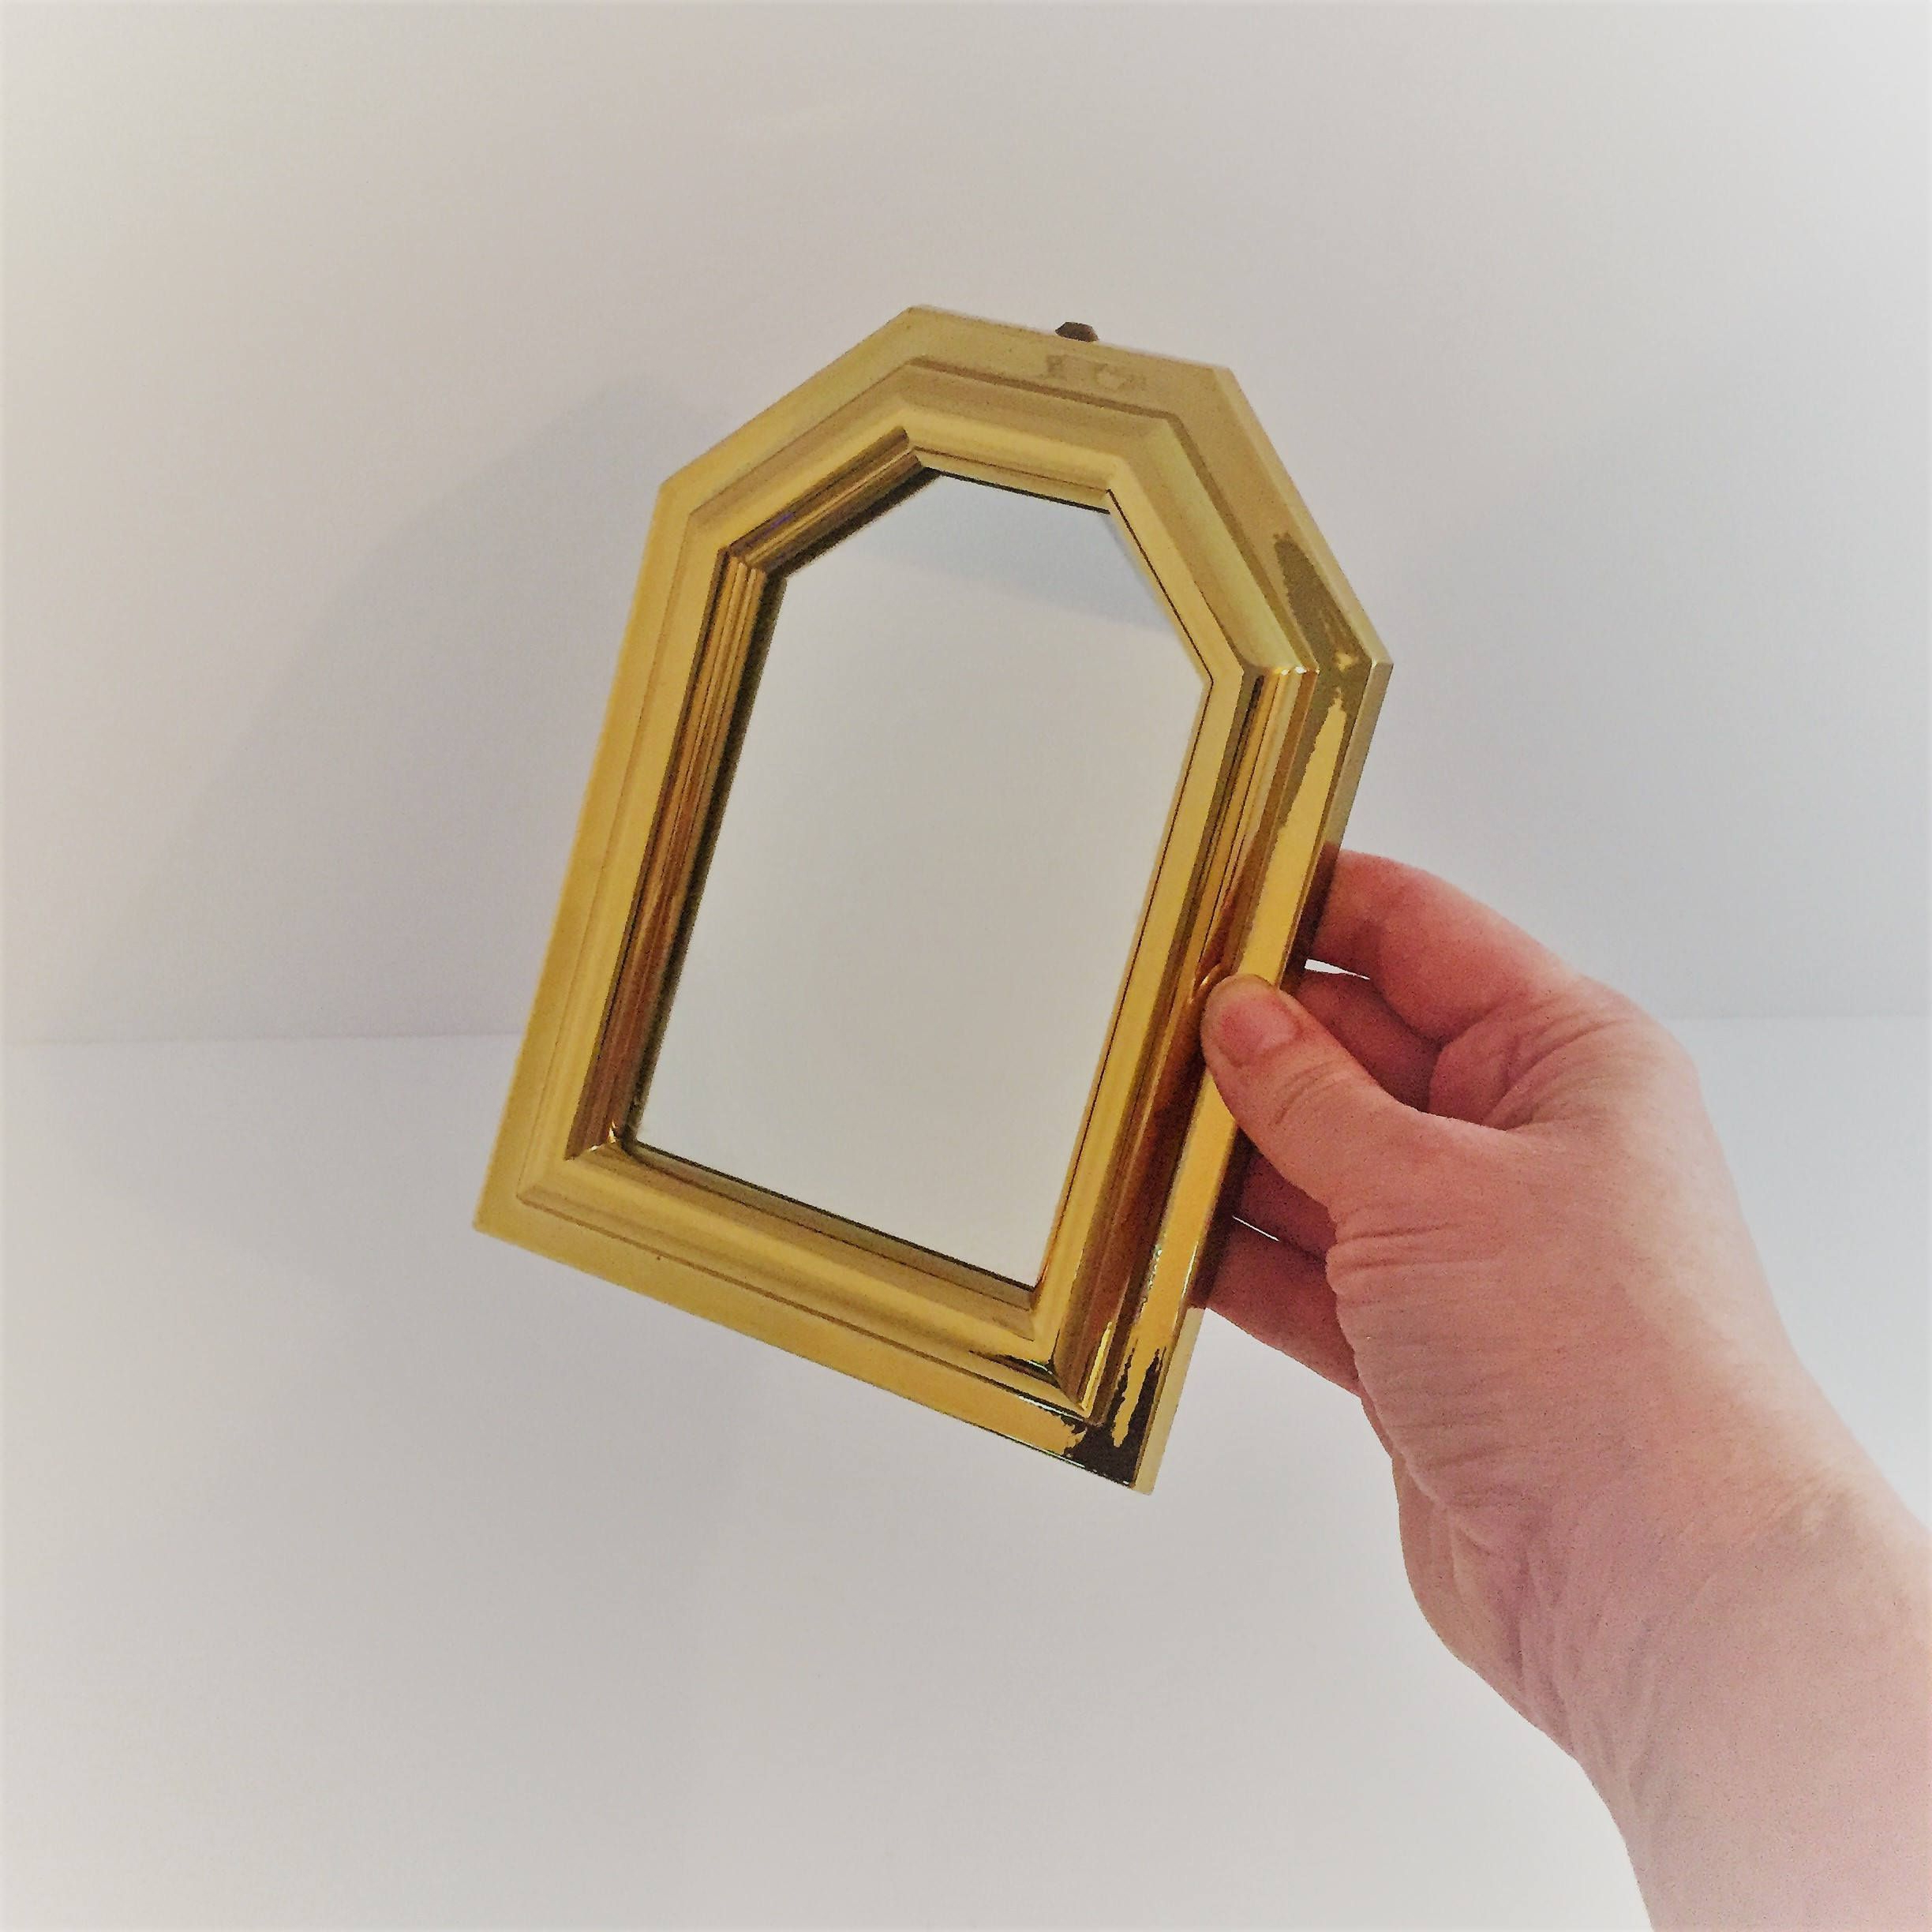 Vintage Gold Mirror Decorative Gold Wall Mirror Lightweight With Trendy Small Gold Wall Mirrors (View 18 of 20)